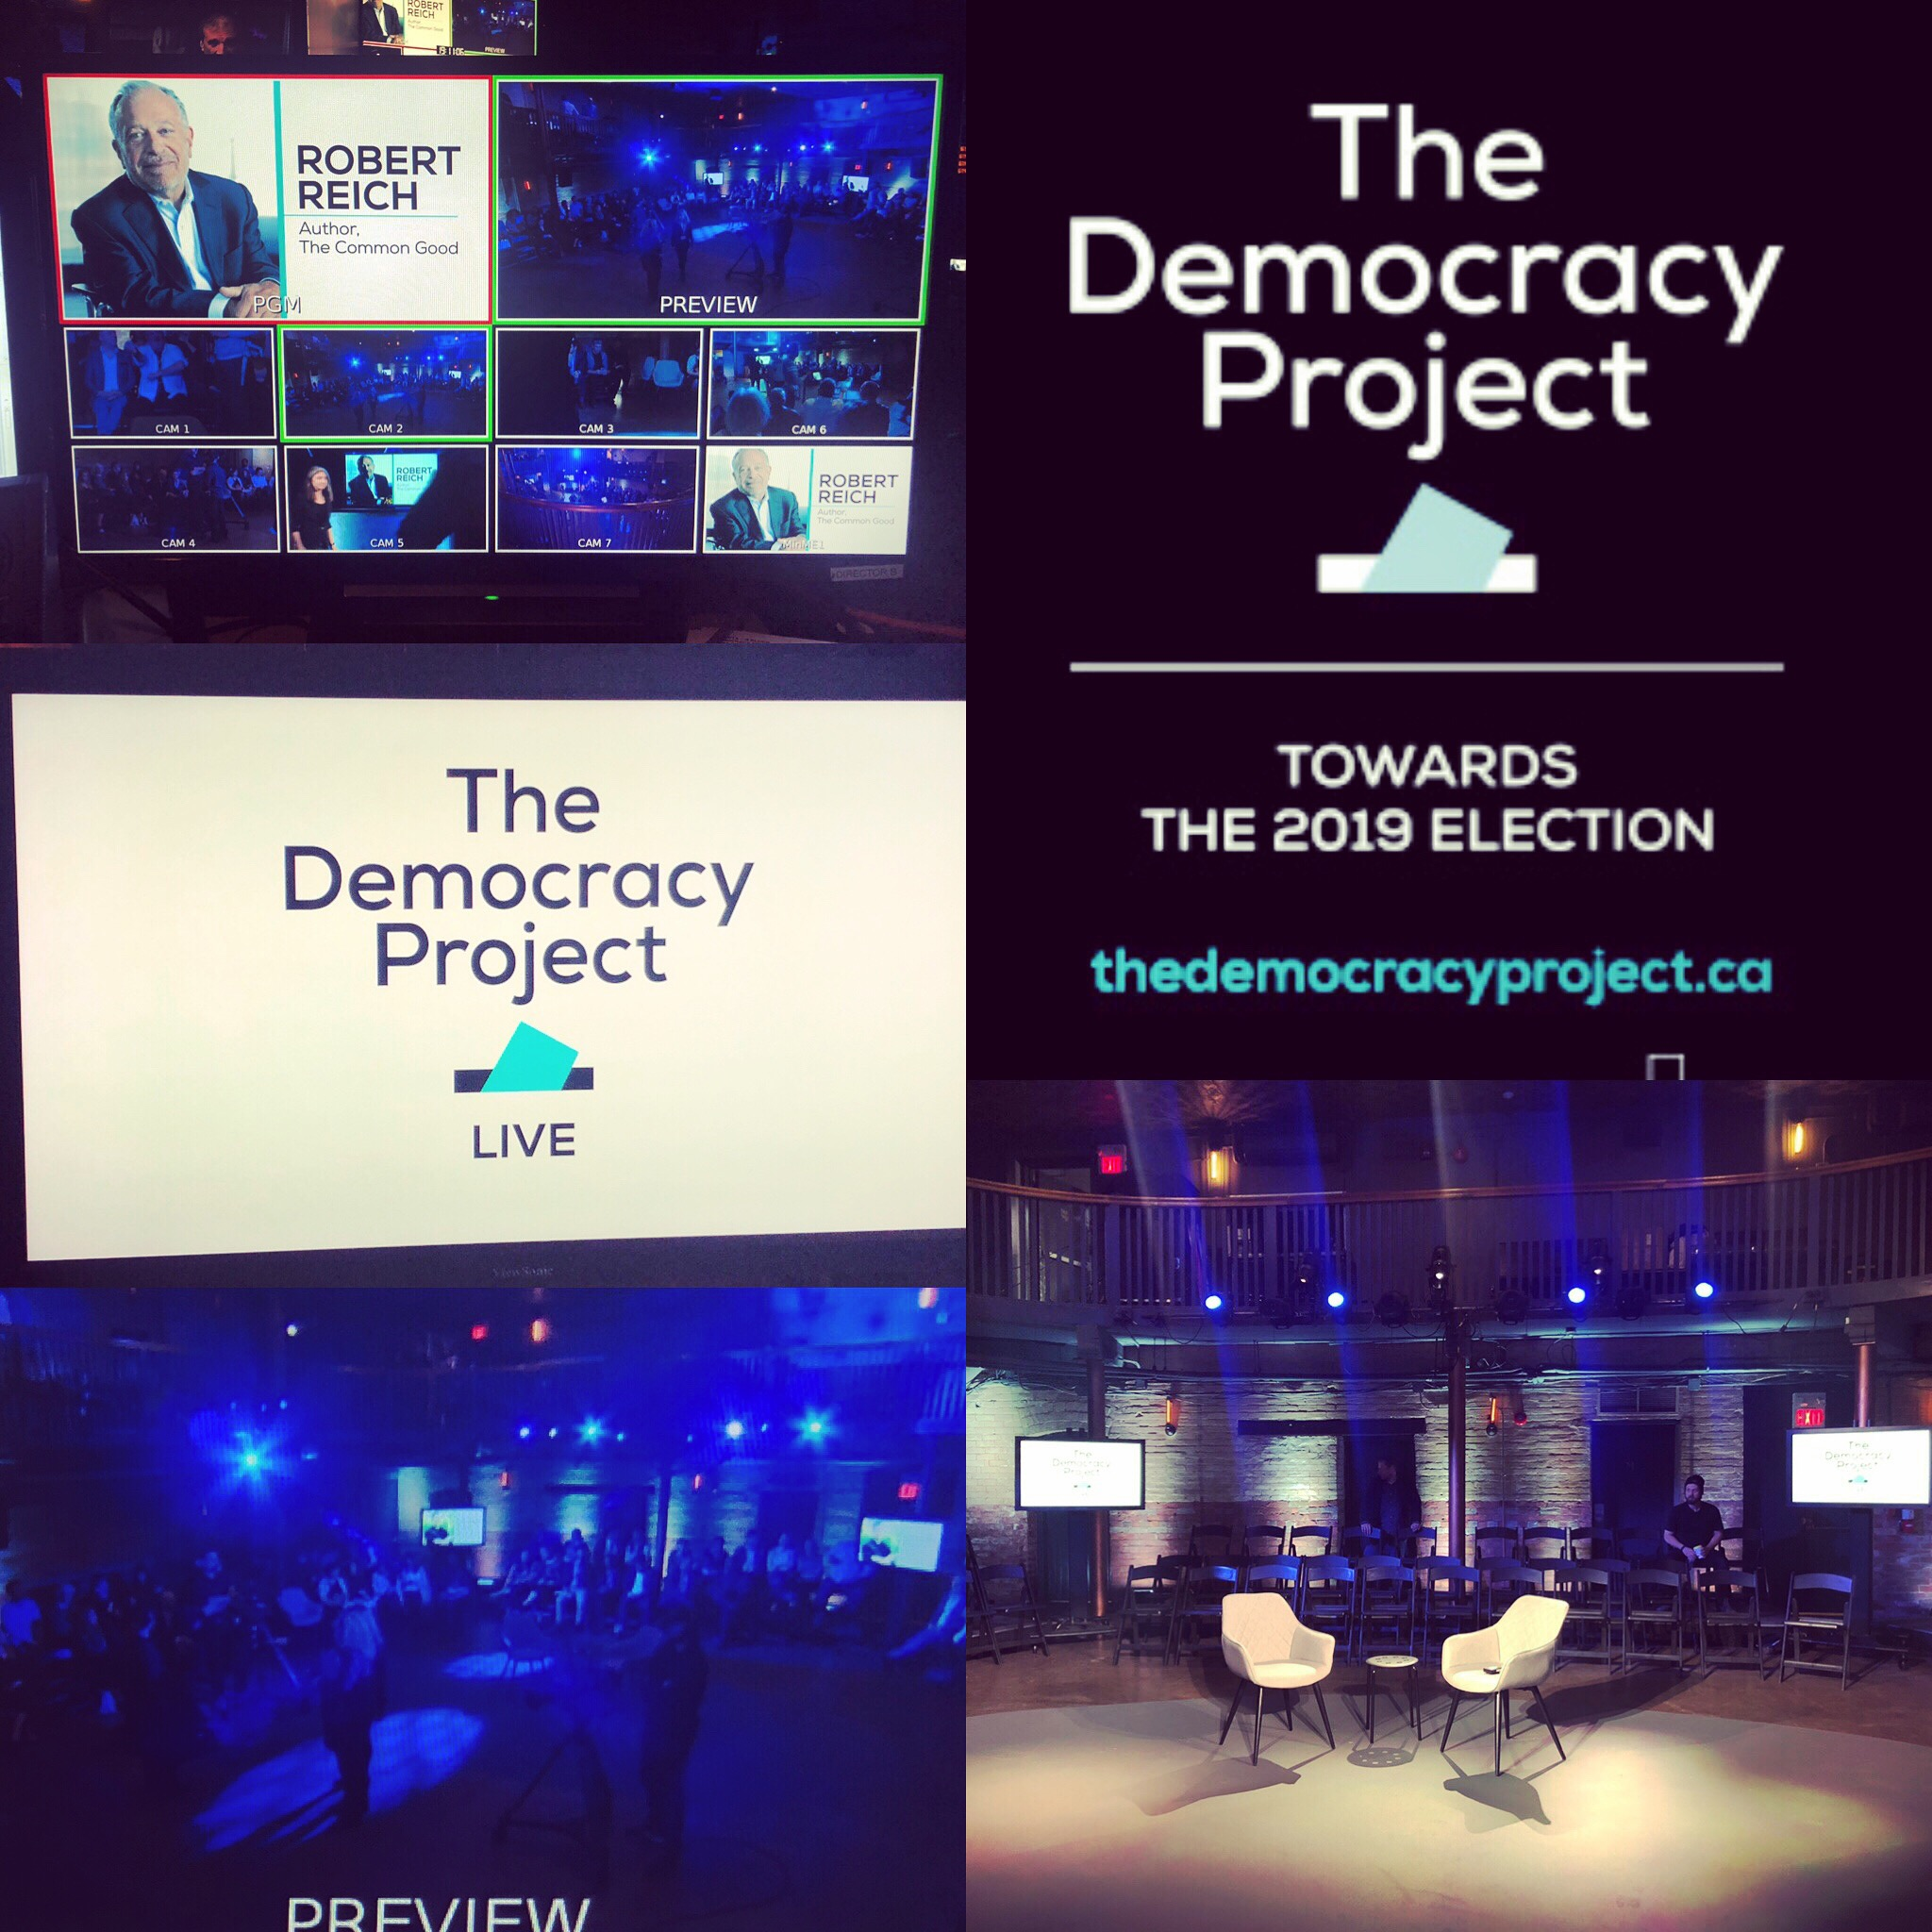 The Democracy Project Live